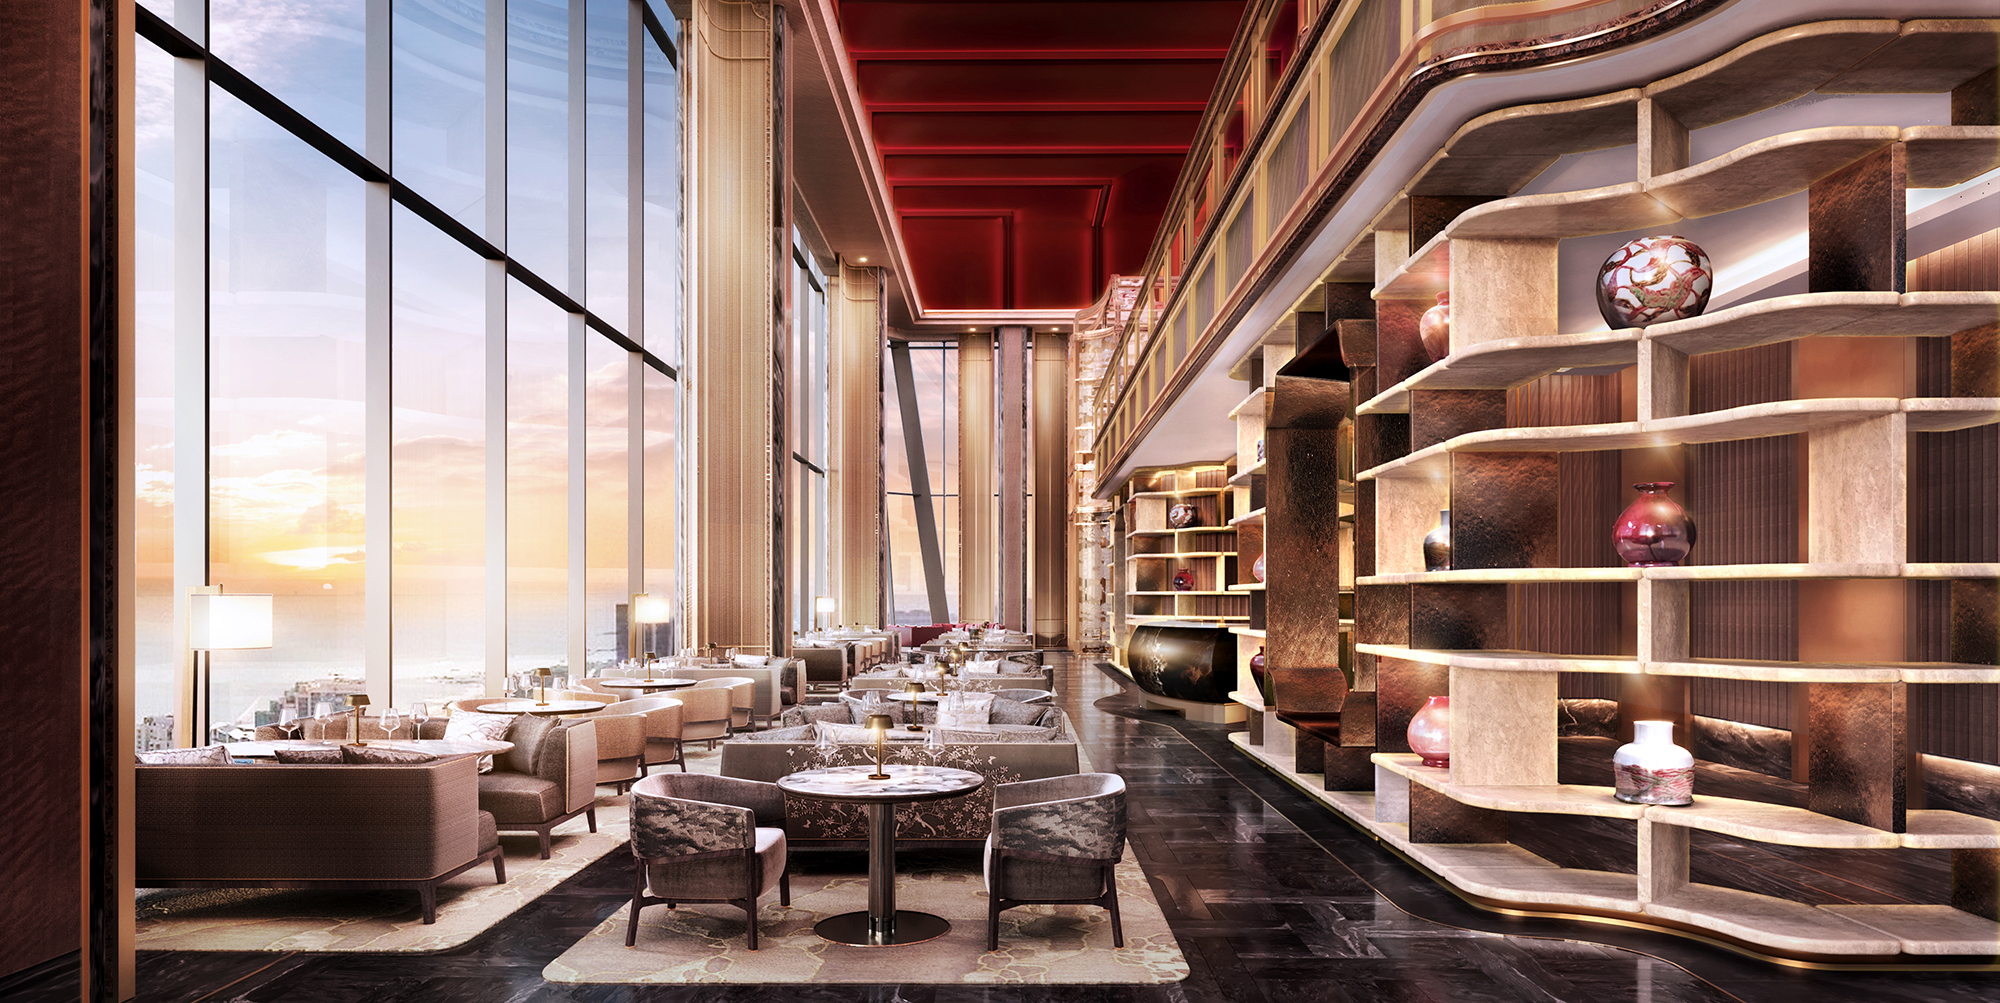 In the heart of coastal Qingdao, discover an exquisite five-star luxury hotel defined by the elevated expression of Chinese culture through emotive materiality and detailing.